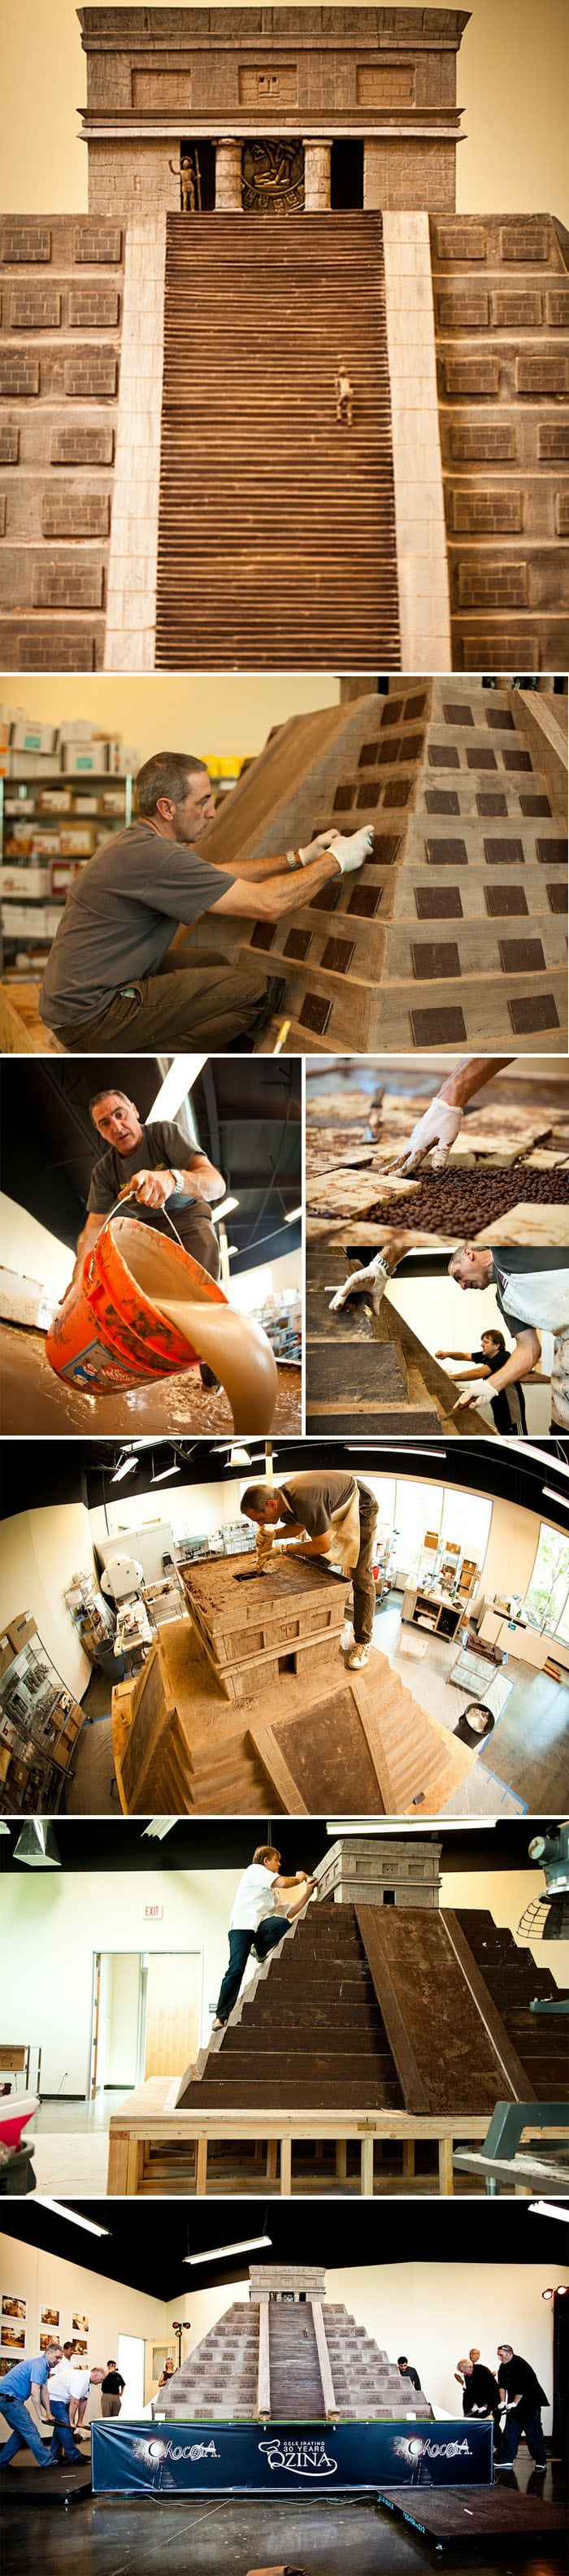 Worlds-Largest-Chocolate-Sculpture-Image